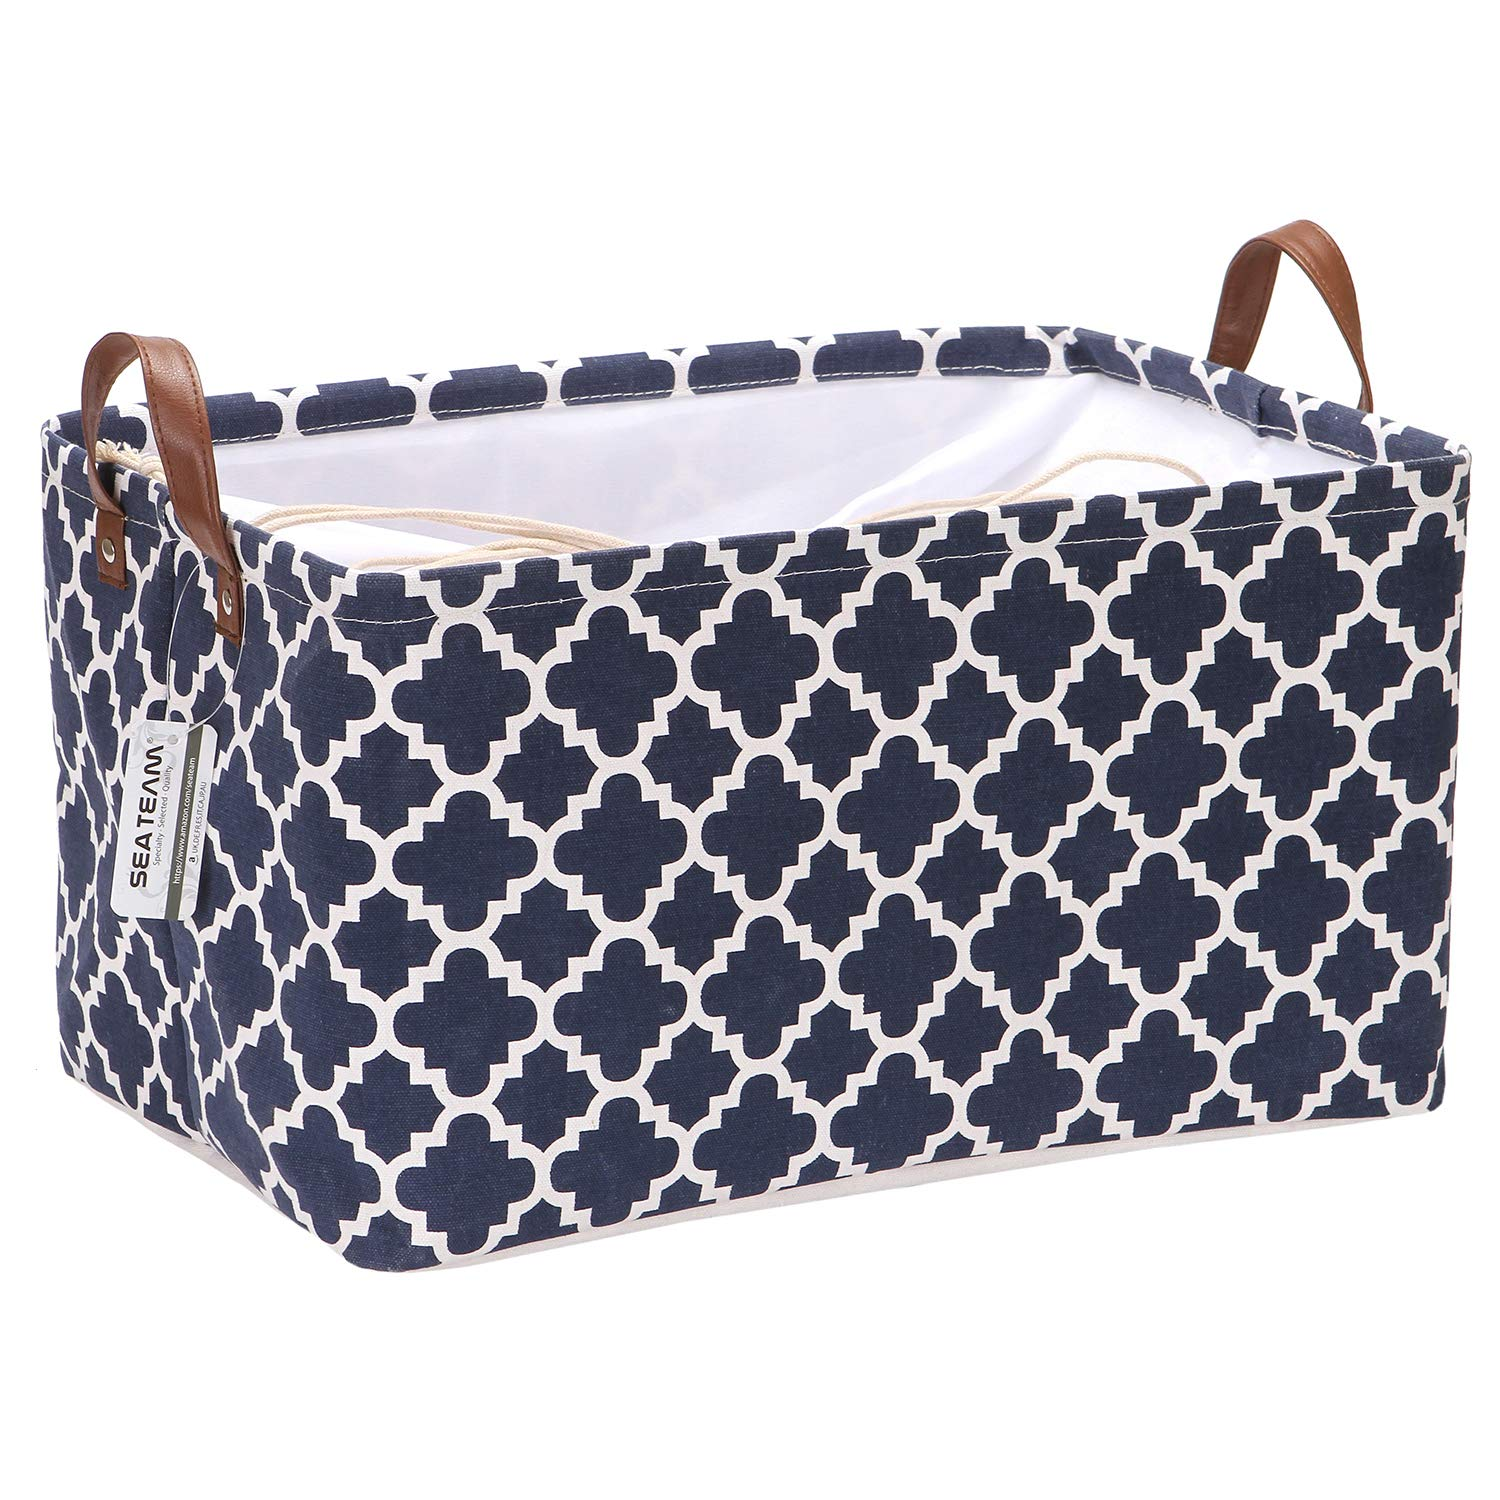 Sea Team Moroccan Lattice Pattern Canvas Fabric Storage Basket Collapsible Geometric Design Storage Bin with Drawstring Cover and PU Leather Handles, 16.5 by 11.8 inches, Waterproof Inner, Dark Blue